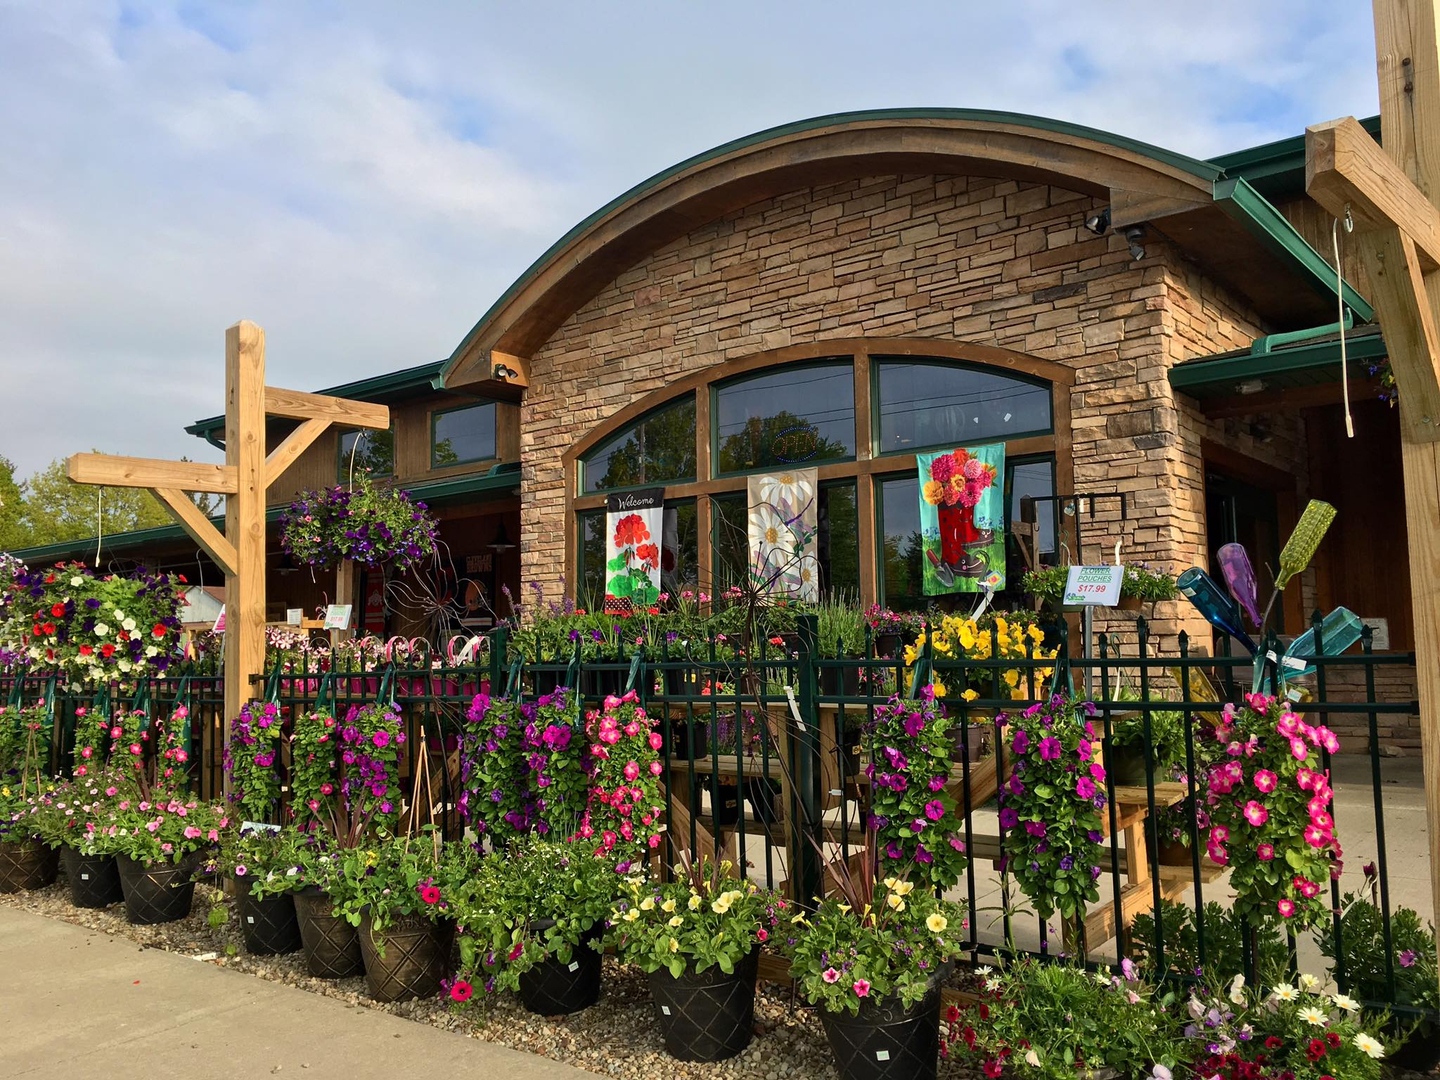 Quality Plants & Landscape Supply - Maria Gardens Center